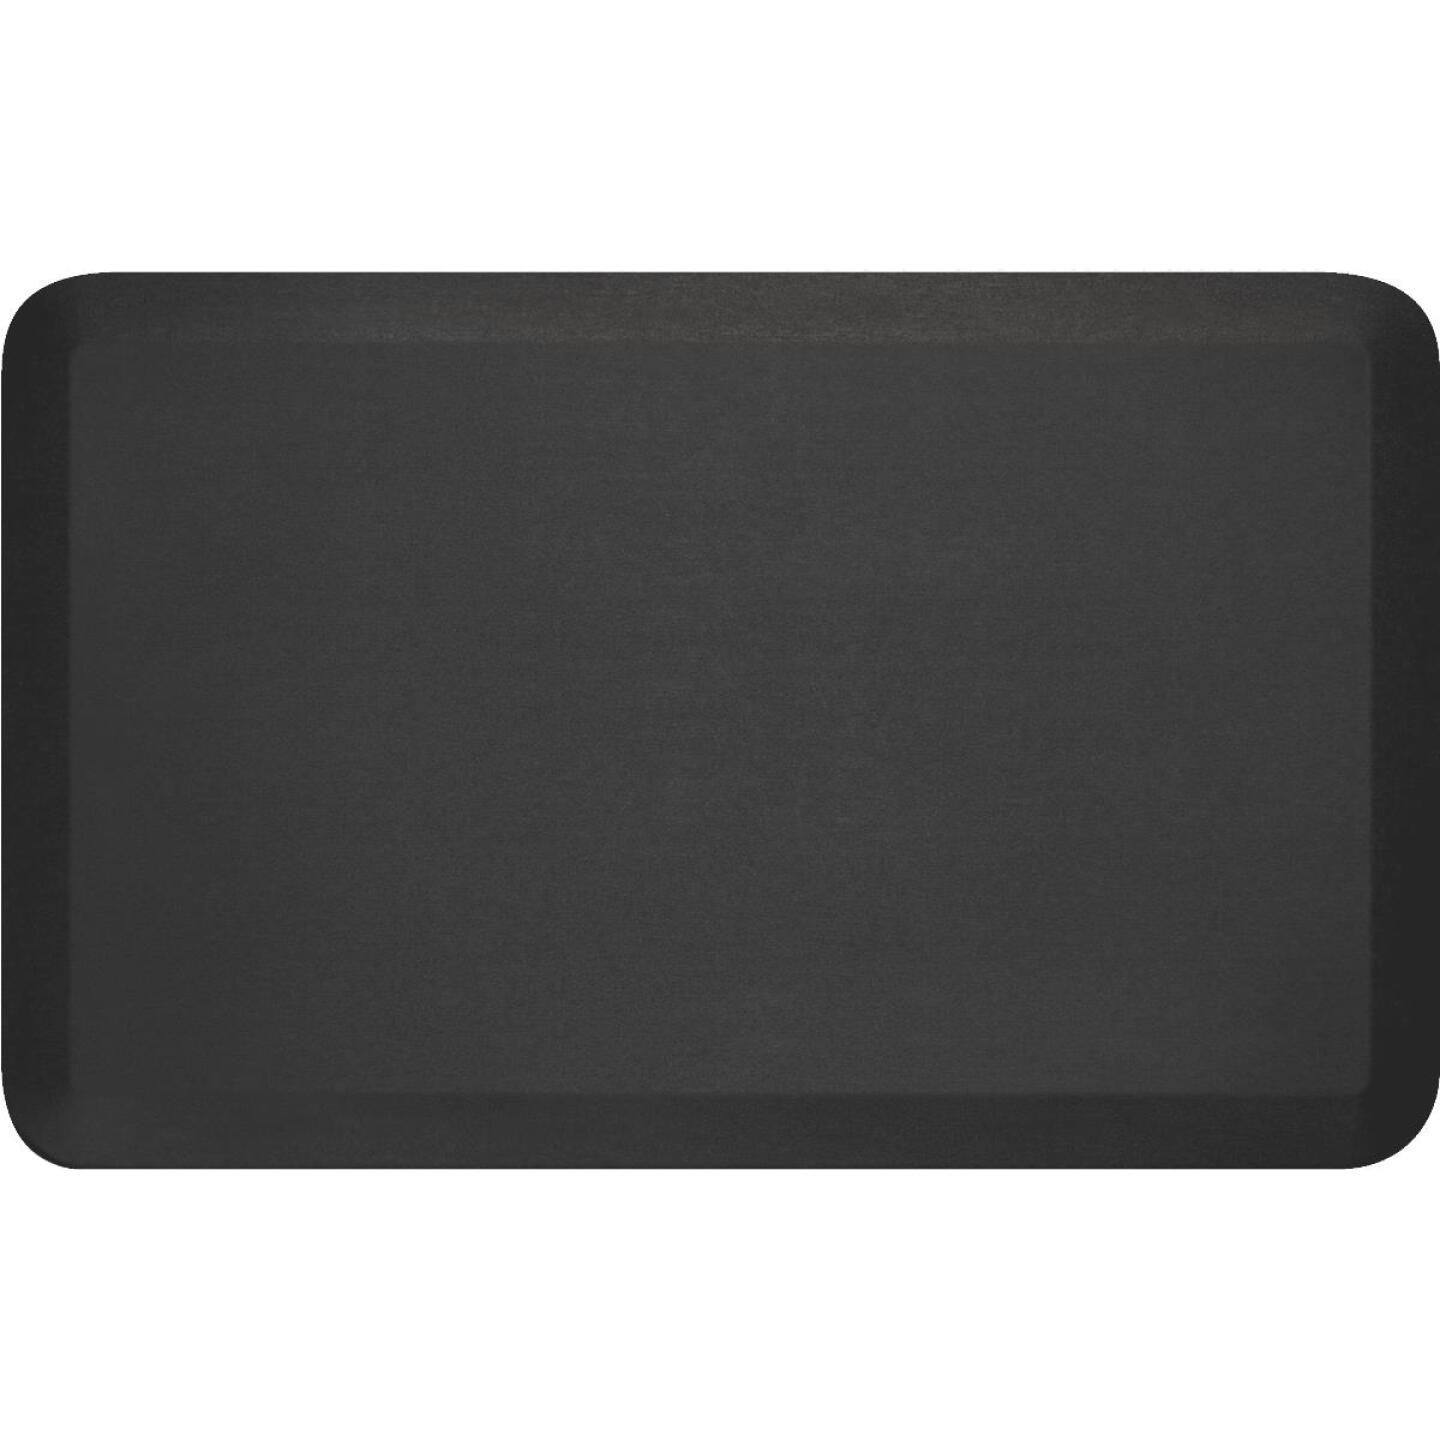 GelPro NewLife 20 In. x 32 In. Black Eco-Pro Commercial Anti-Fatigue Mat Image 1